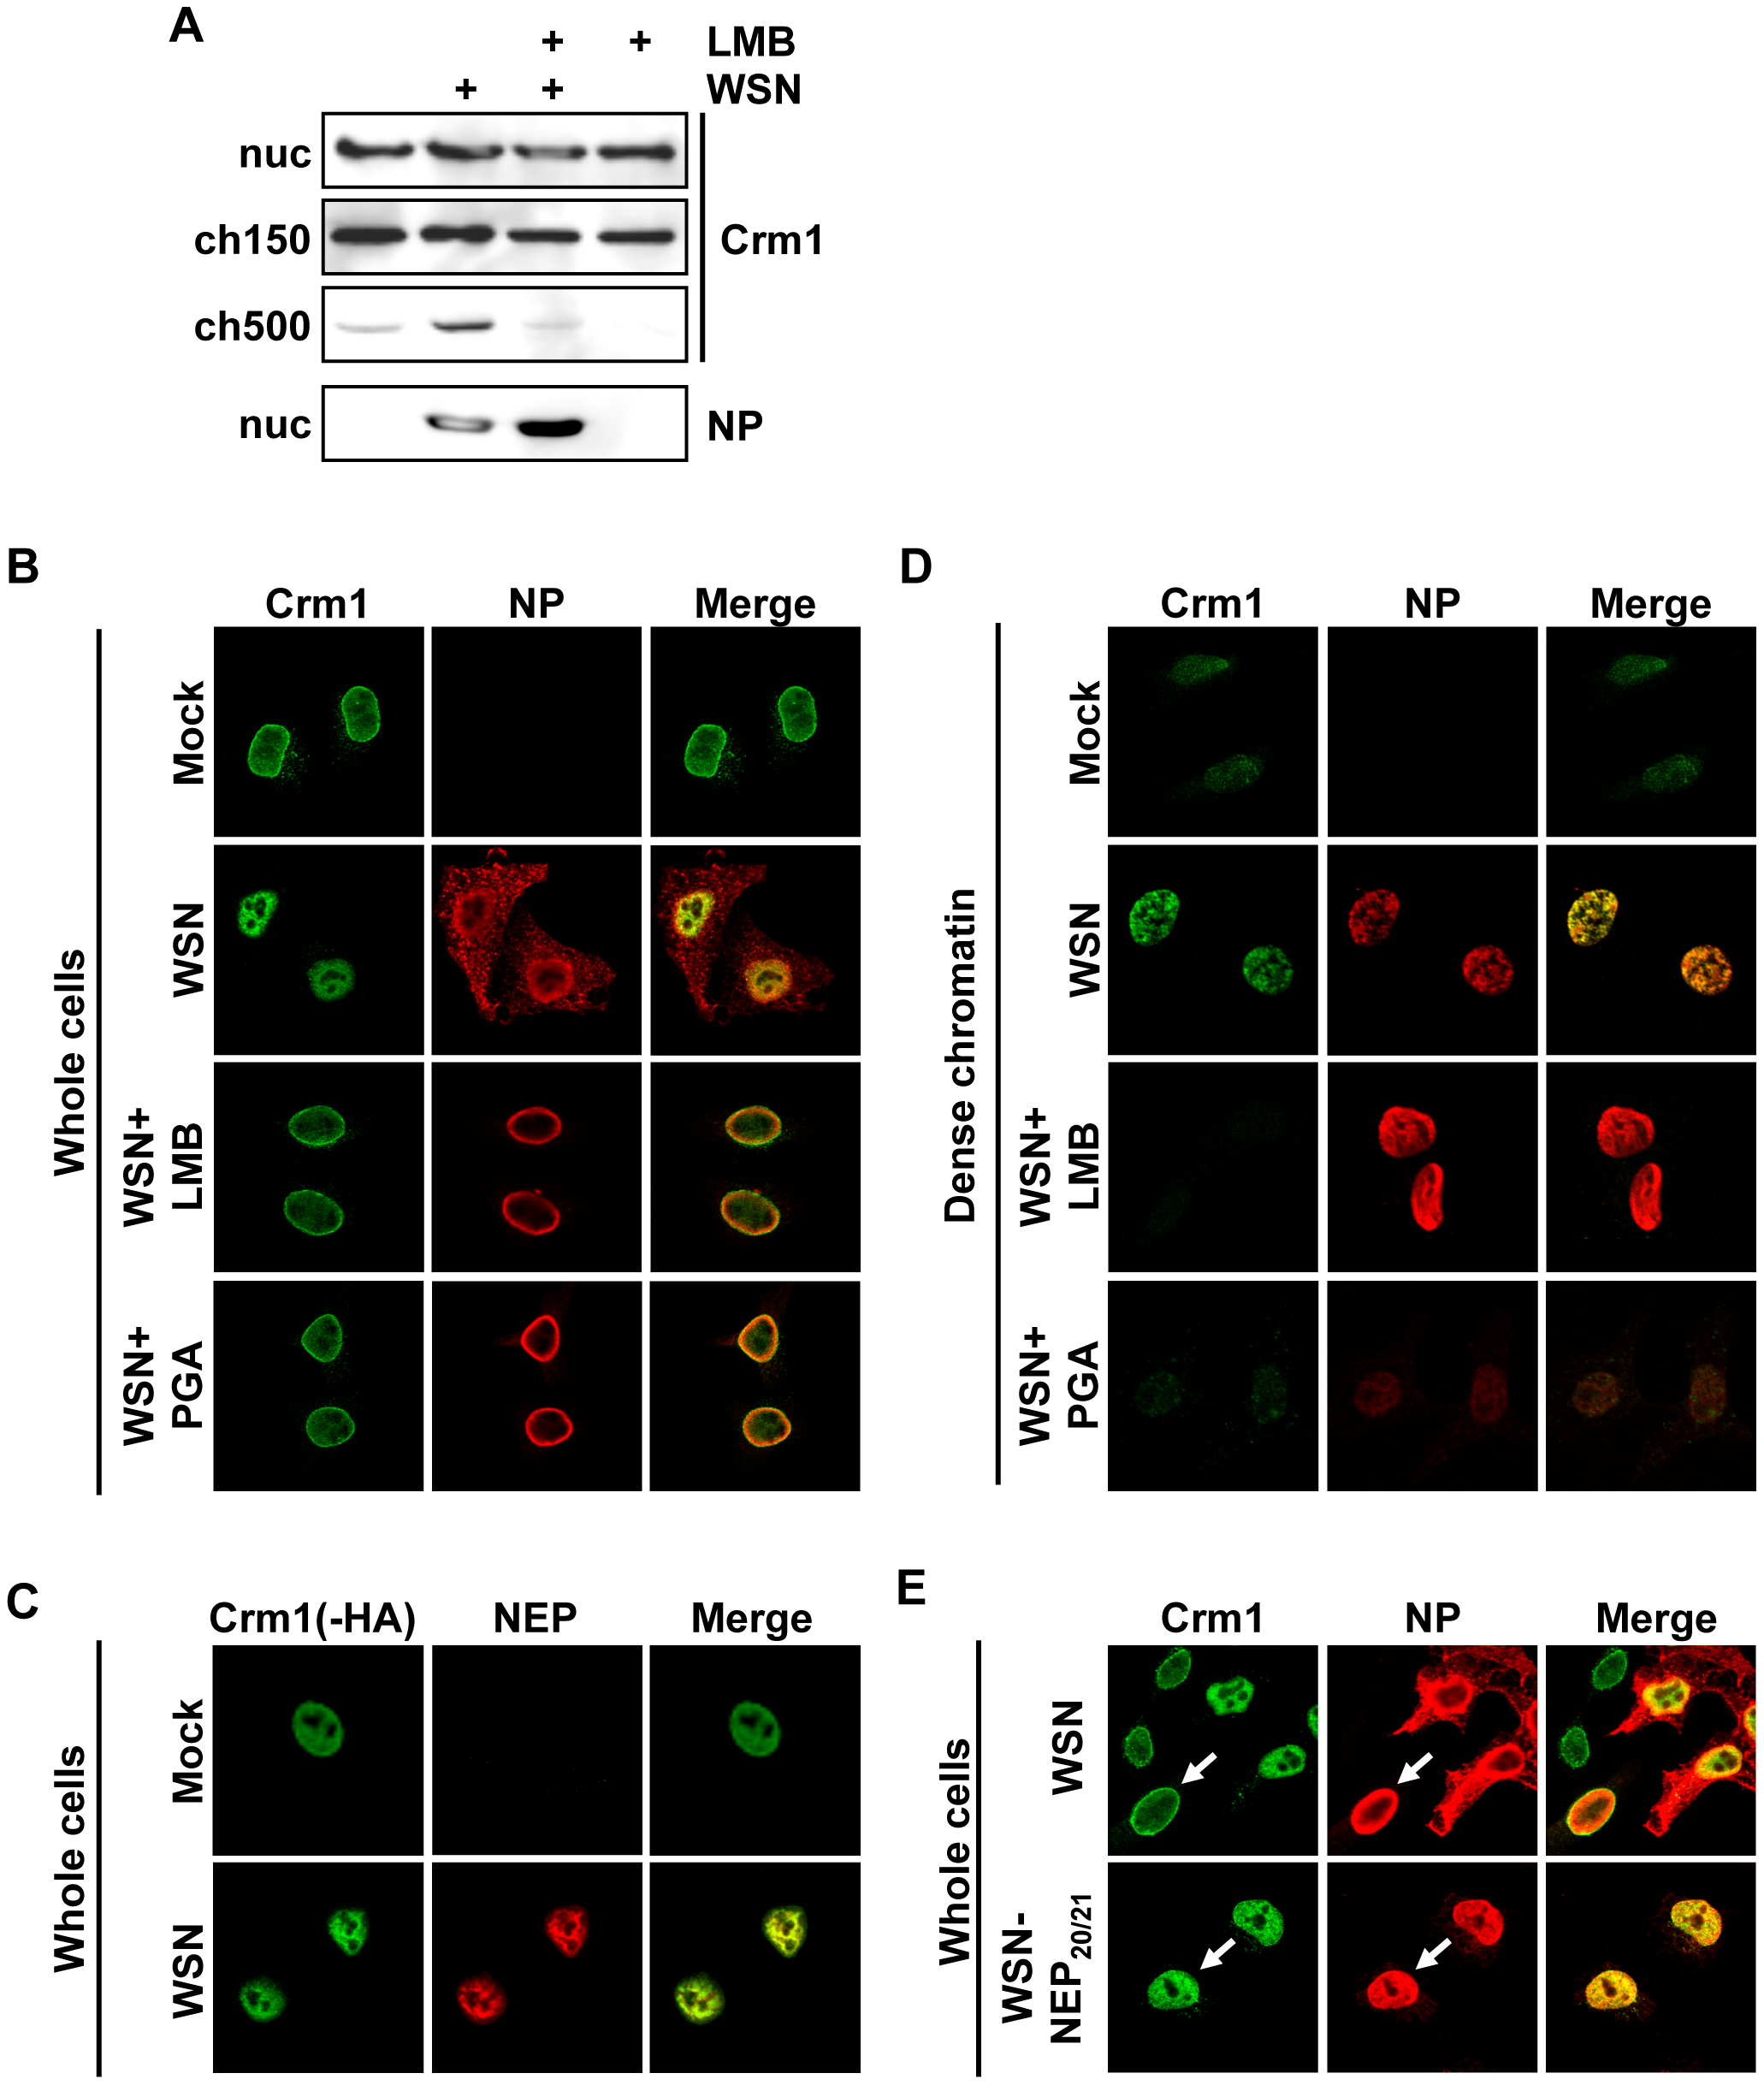 Relocalization of Crm1 to dense chromatin after influenza virus infection.